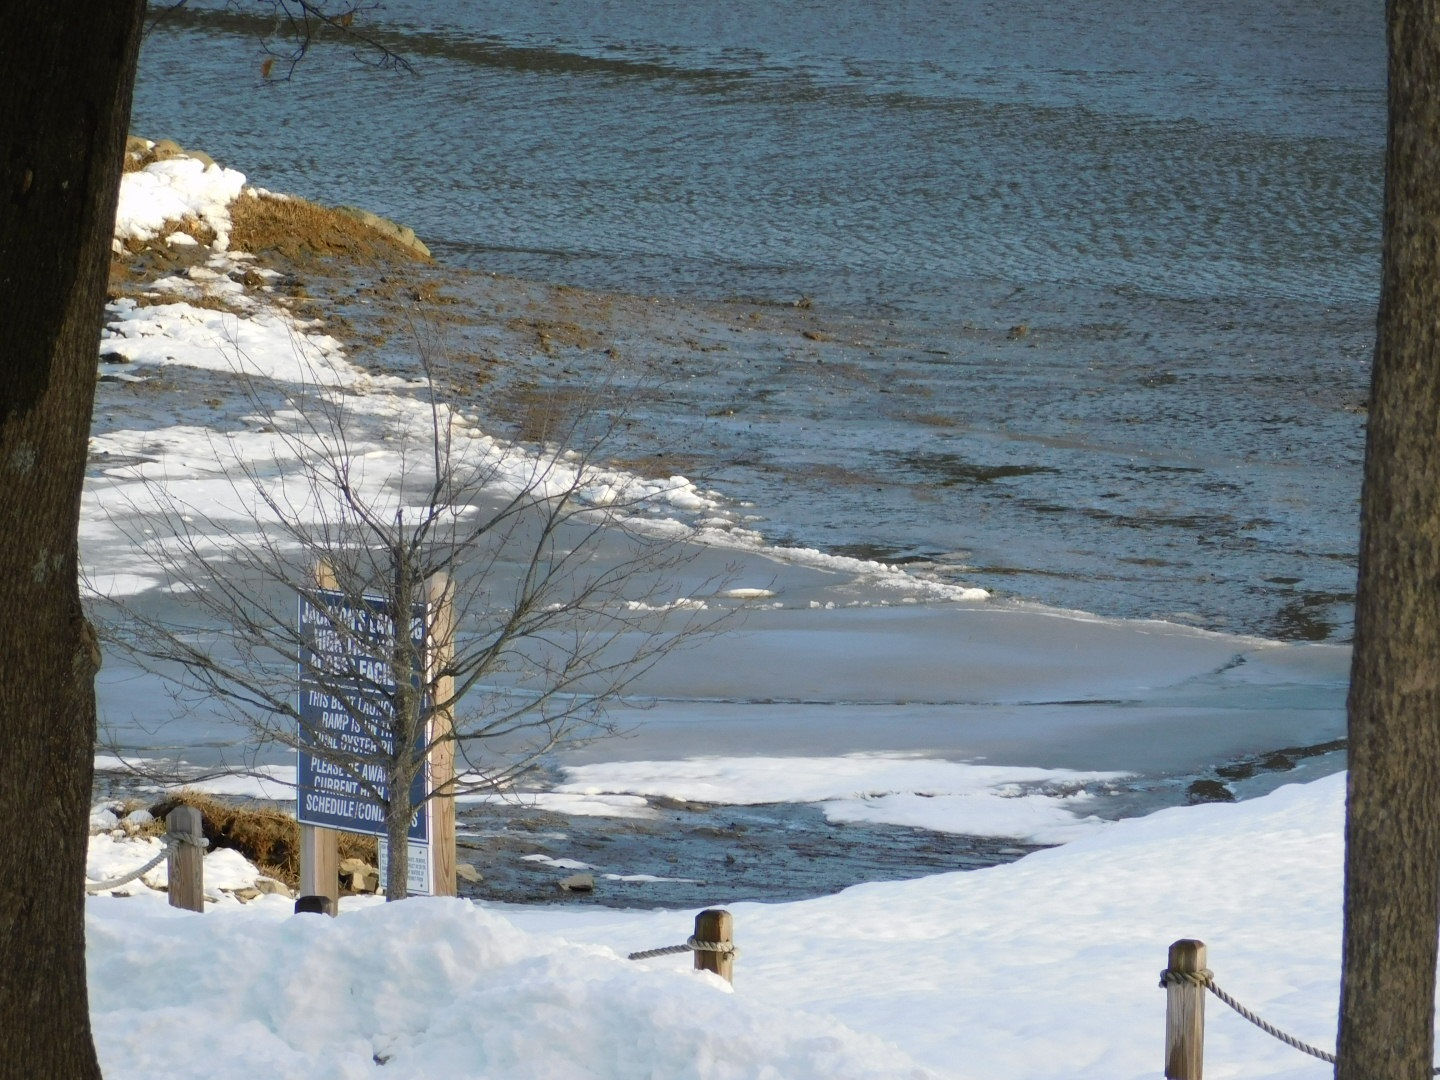 The River Trimmed in Snow by Stacey J. Cunningham